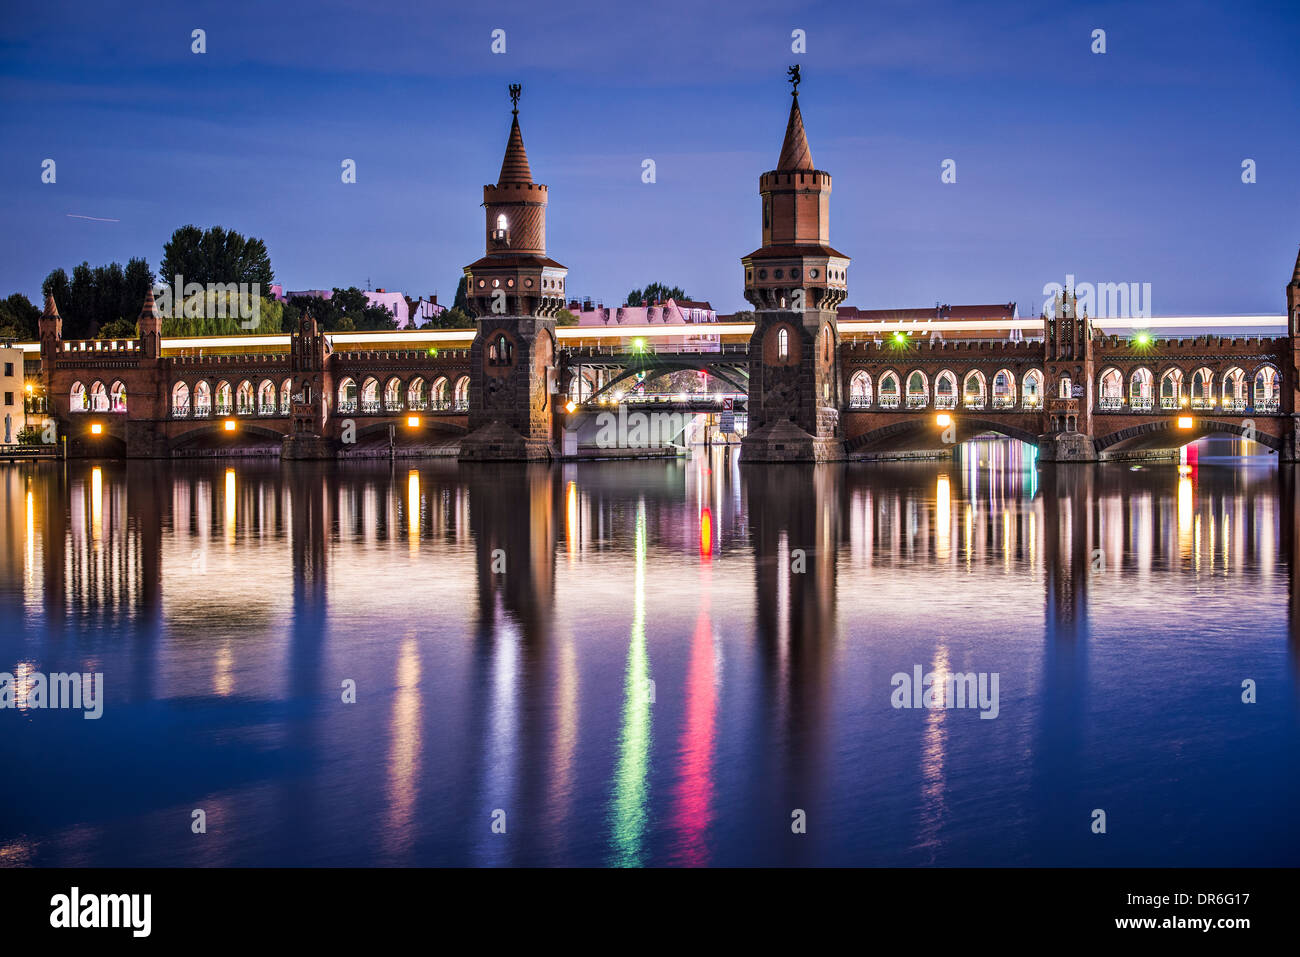 Berlin, Germany at the Oberbaum Bridge over the Spree River. - Stock Image